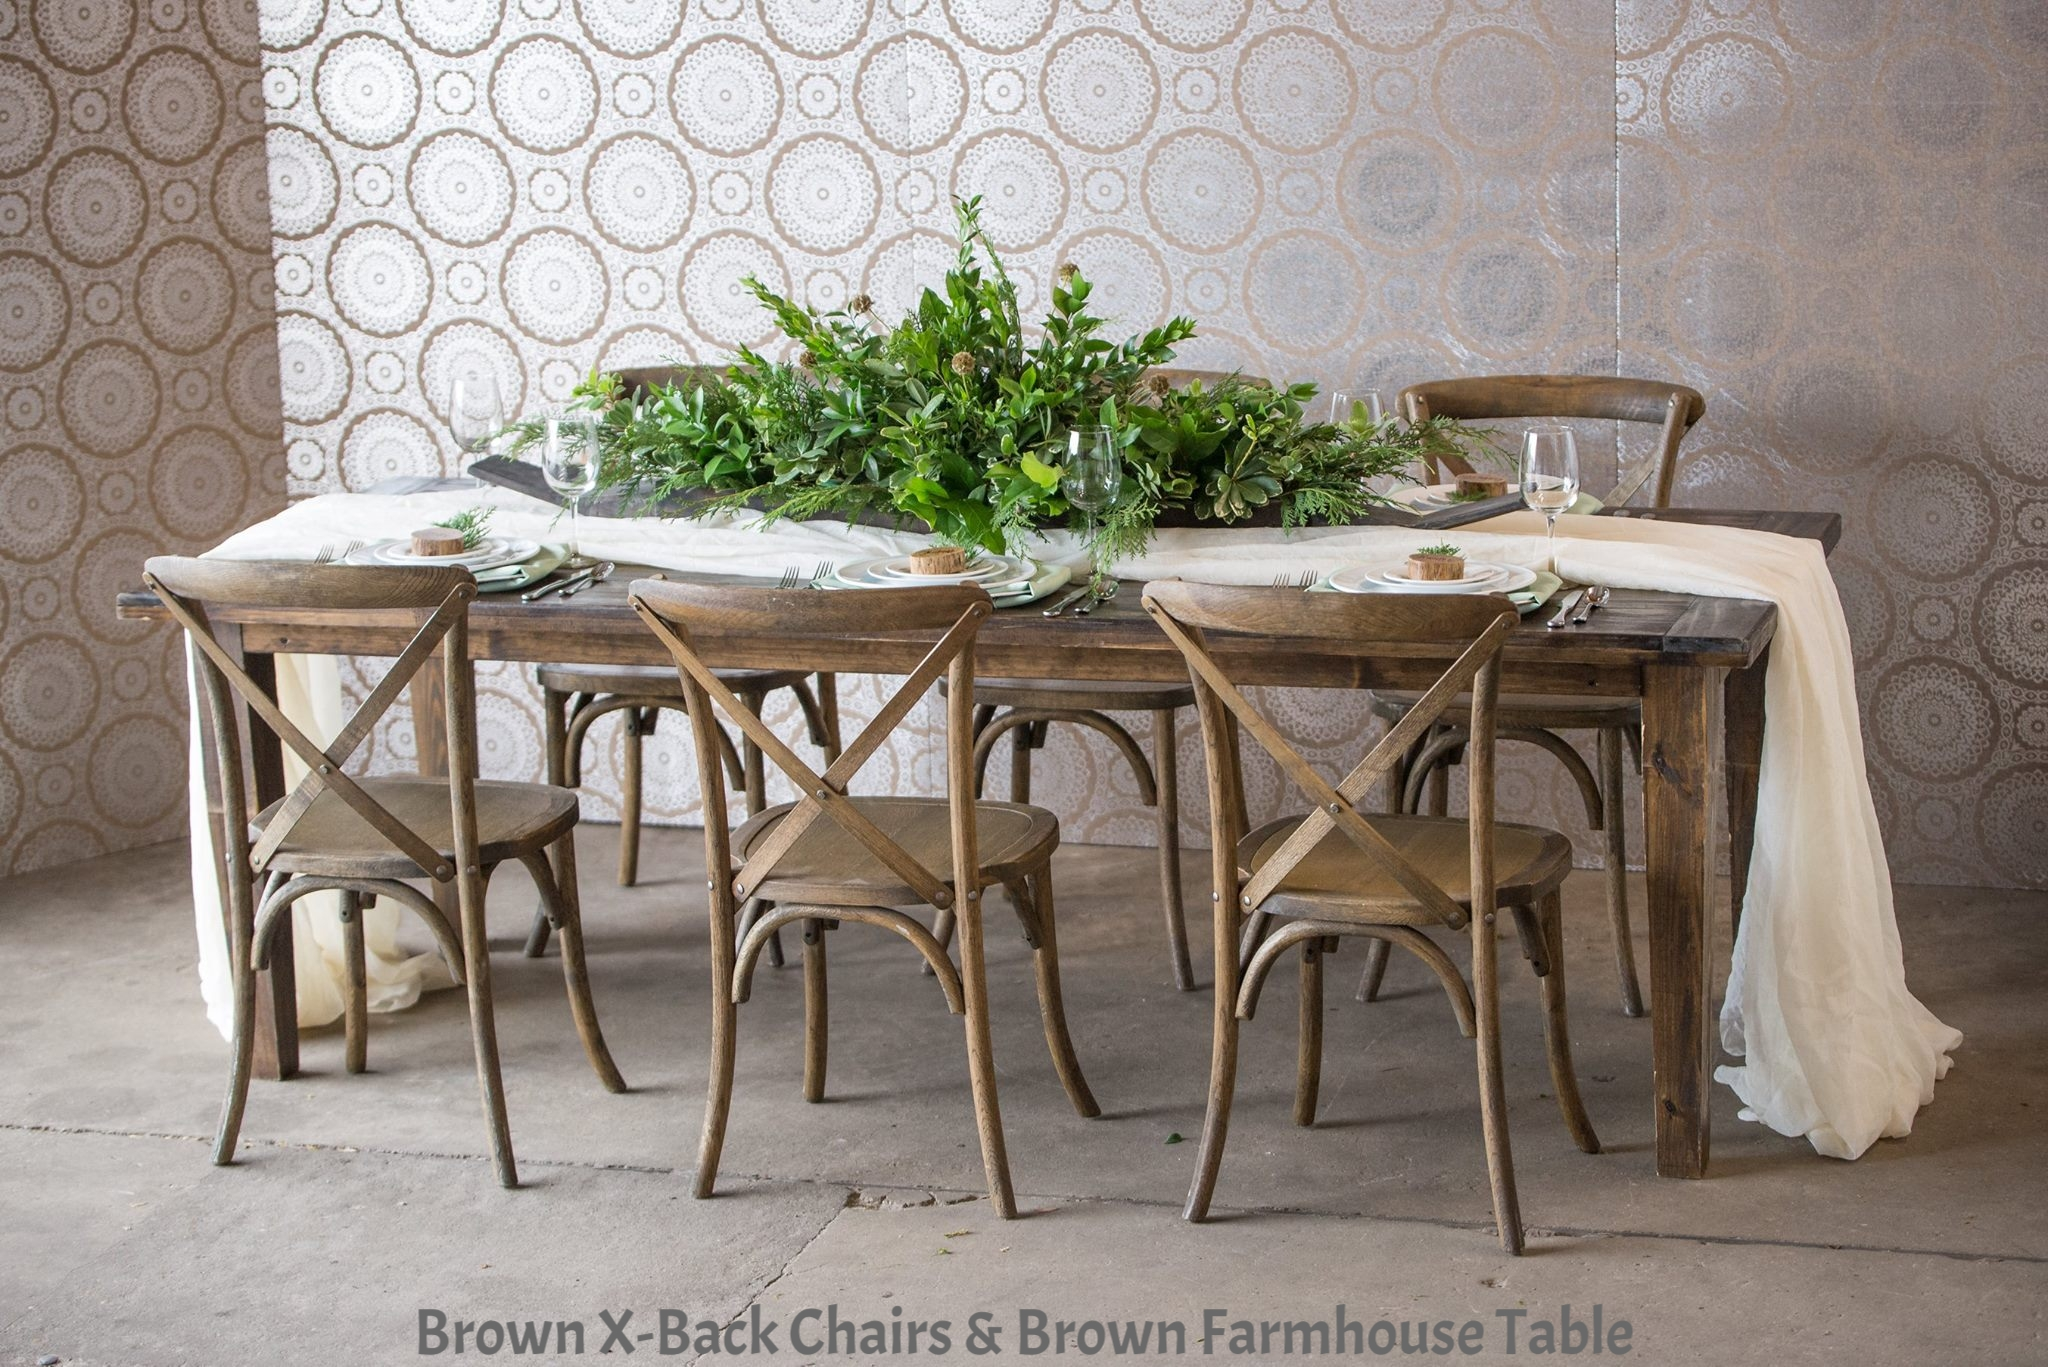 Brown Farmhouse Table with X-Back Chairs